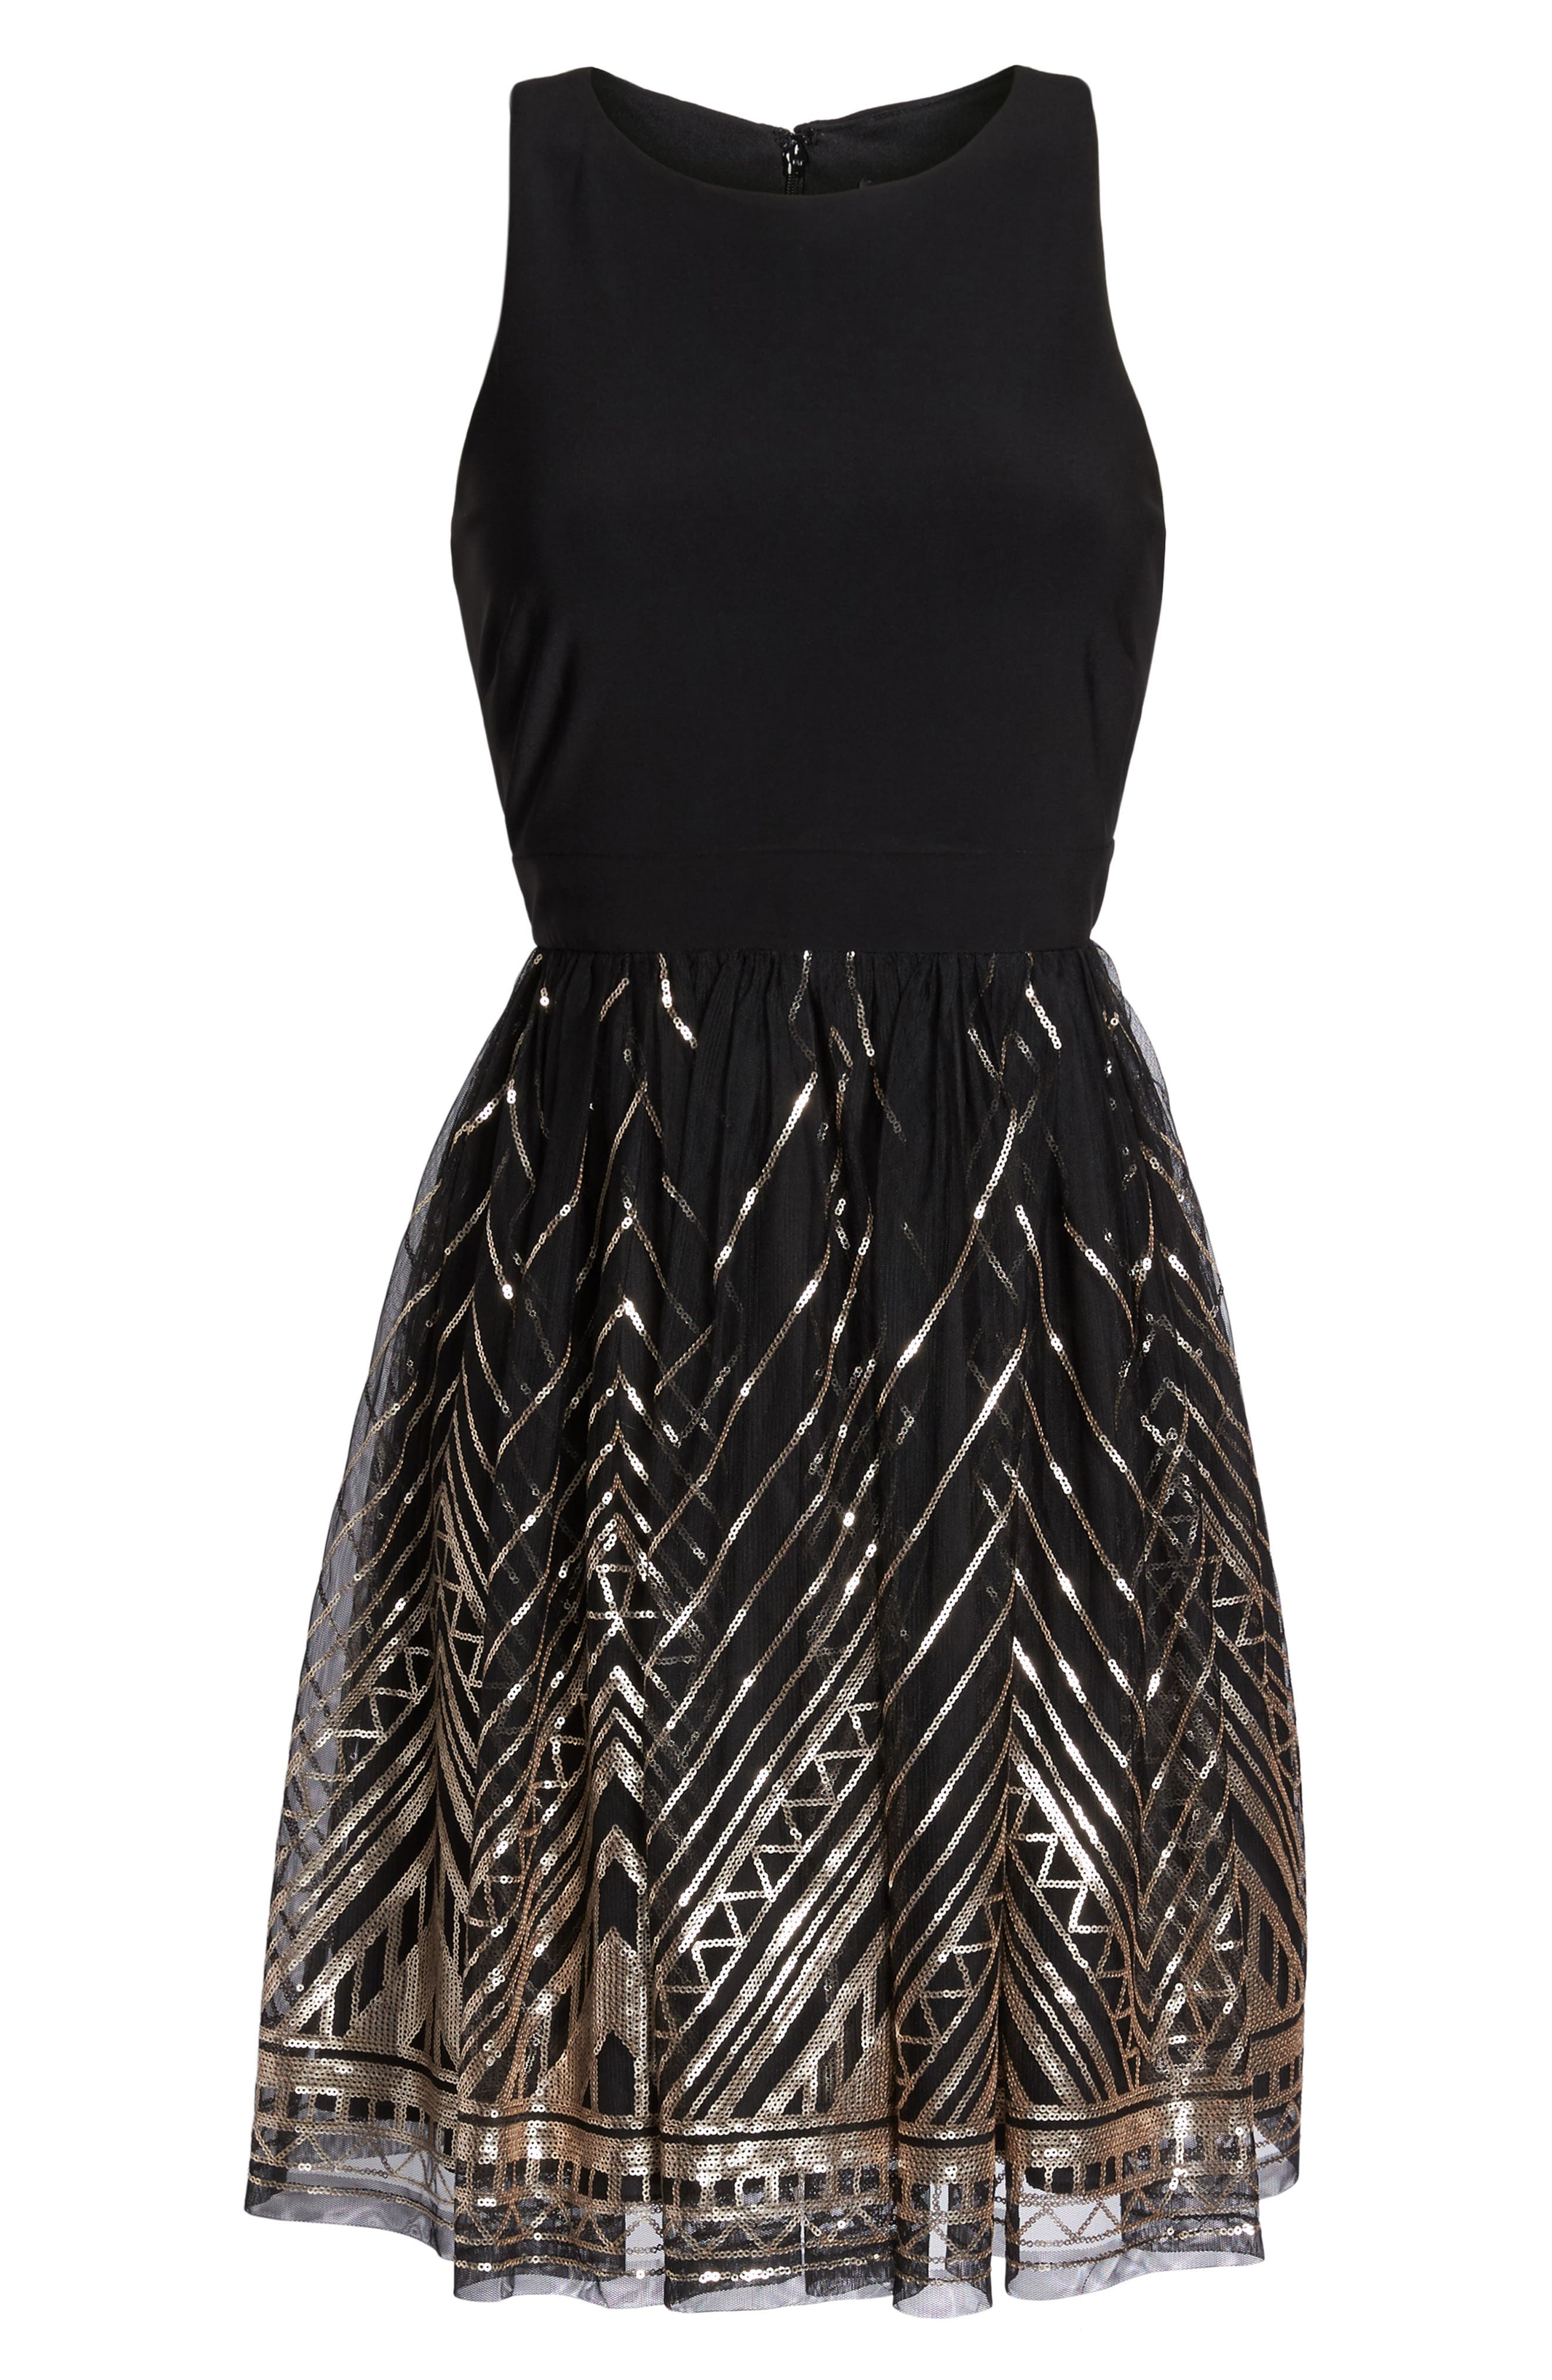 VINCE CAMUTO, Sequin Fit & Flare Cocktail Dress, Alternate thumbnail 7, color, BLACK/ GOLD